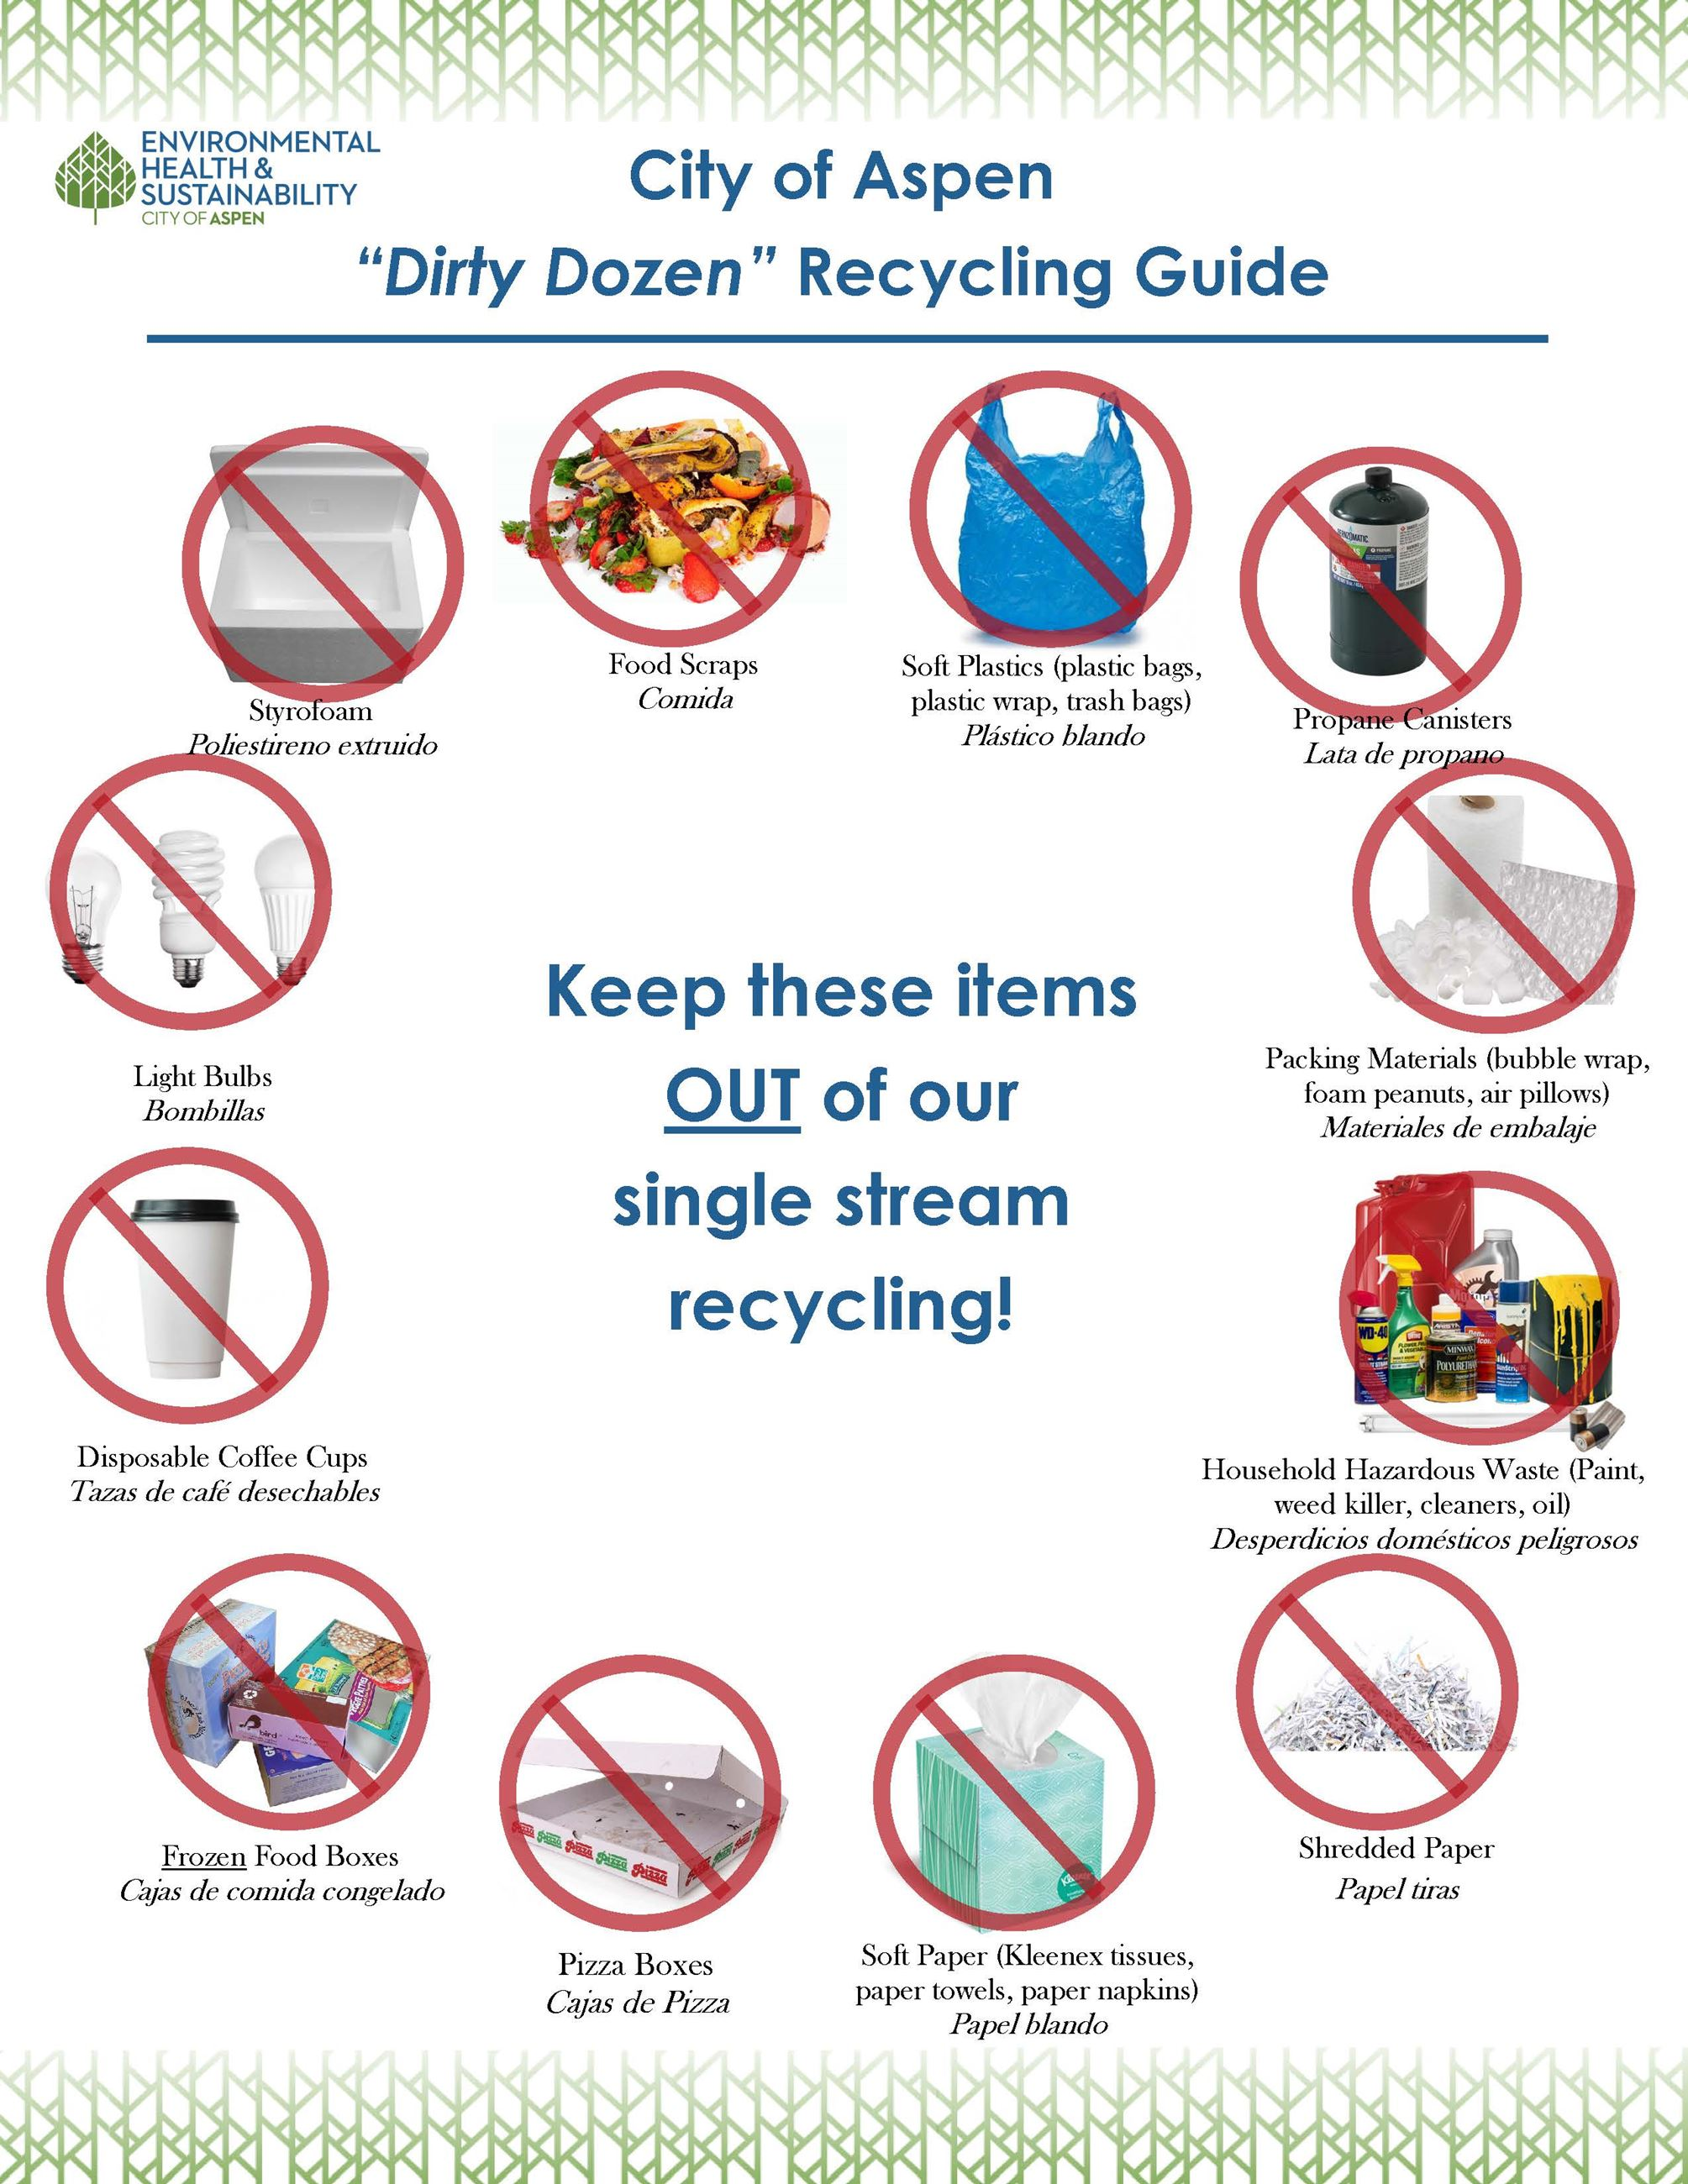 Recycling Dirty Dozen Opens in new window